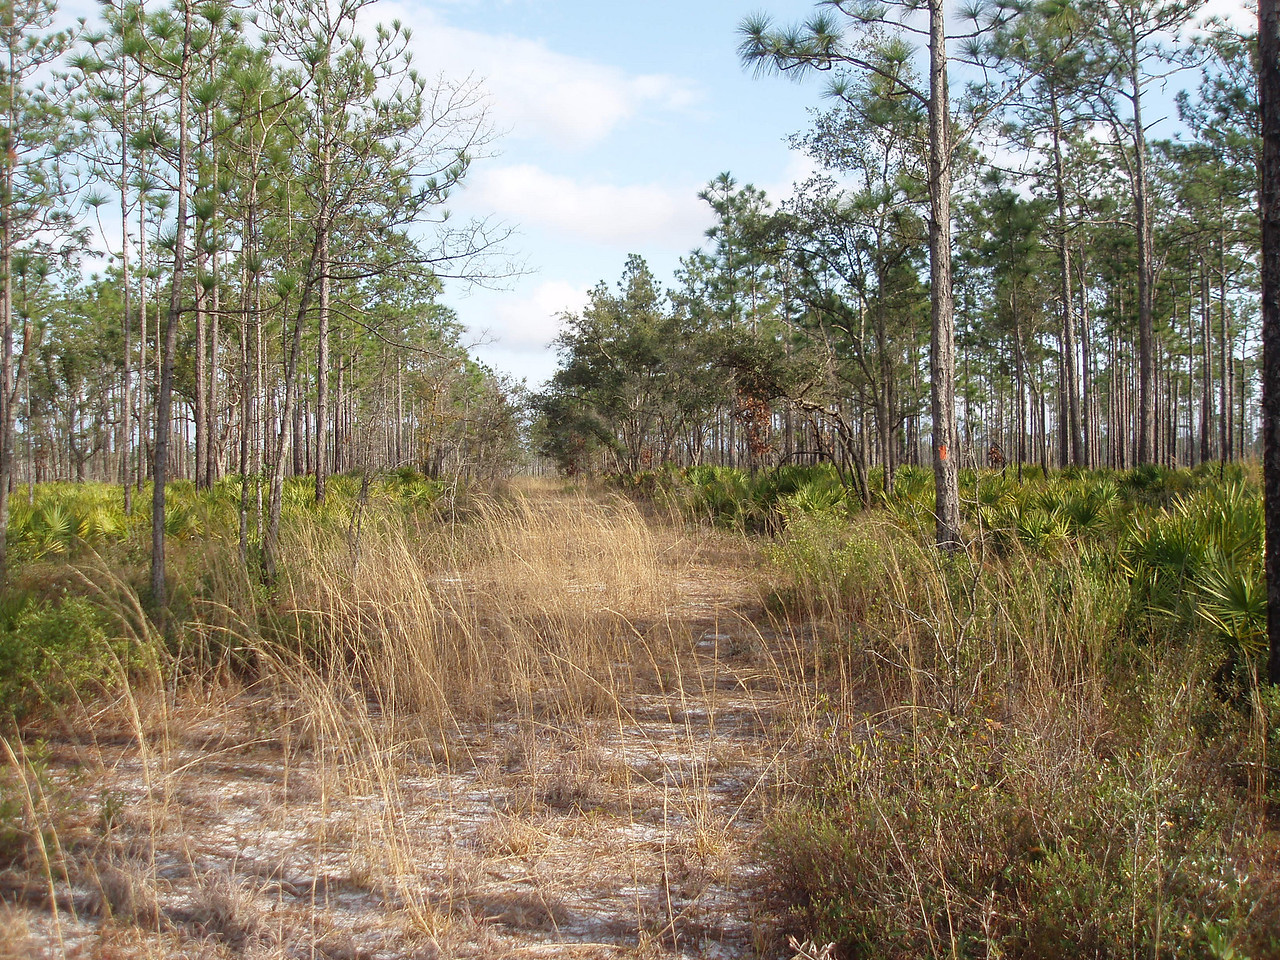 Florida Trail in upland flatwoods<br /> PHOTO CREDIT: Bob Coveney / Florida Trail Association